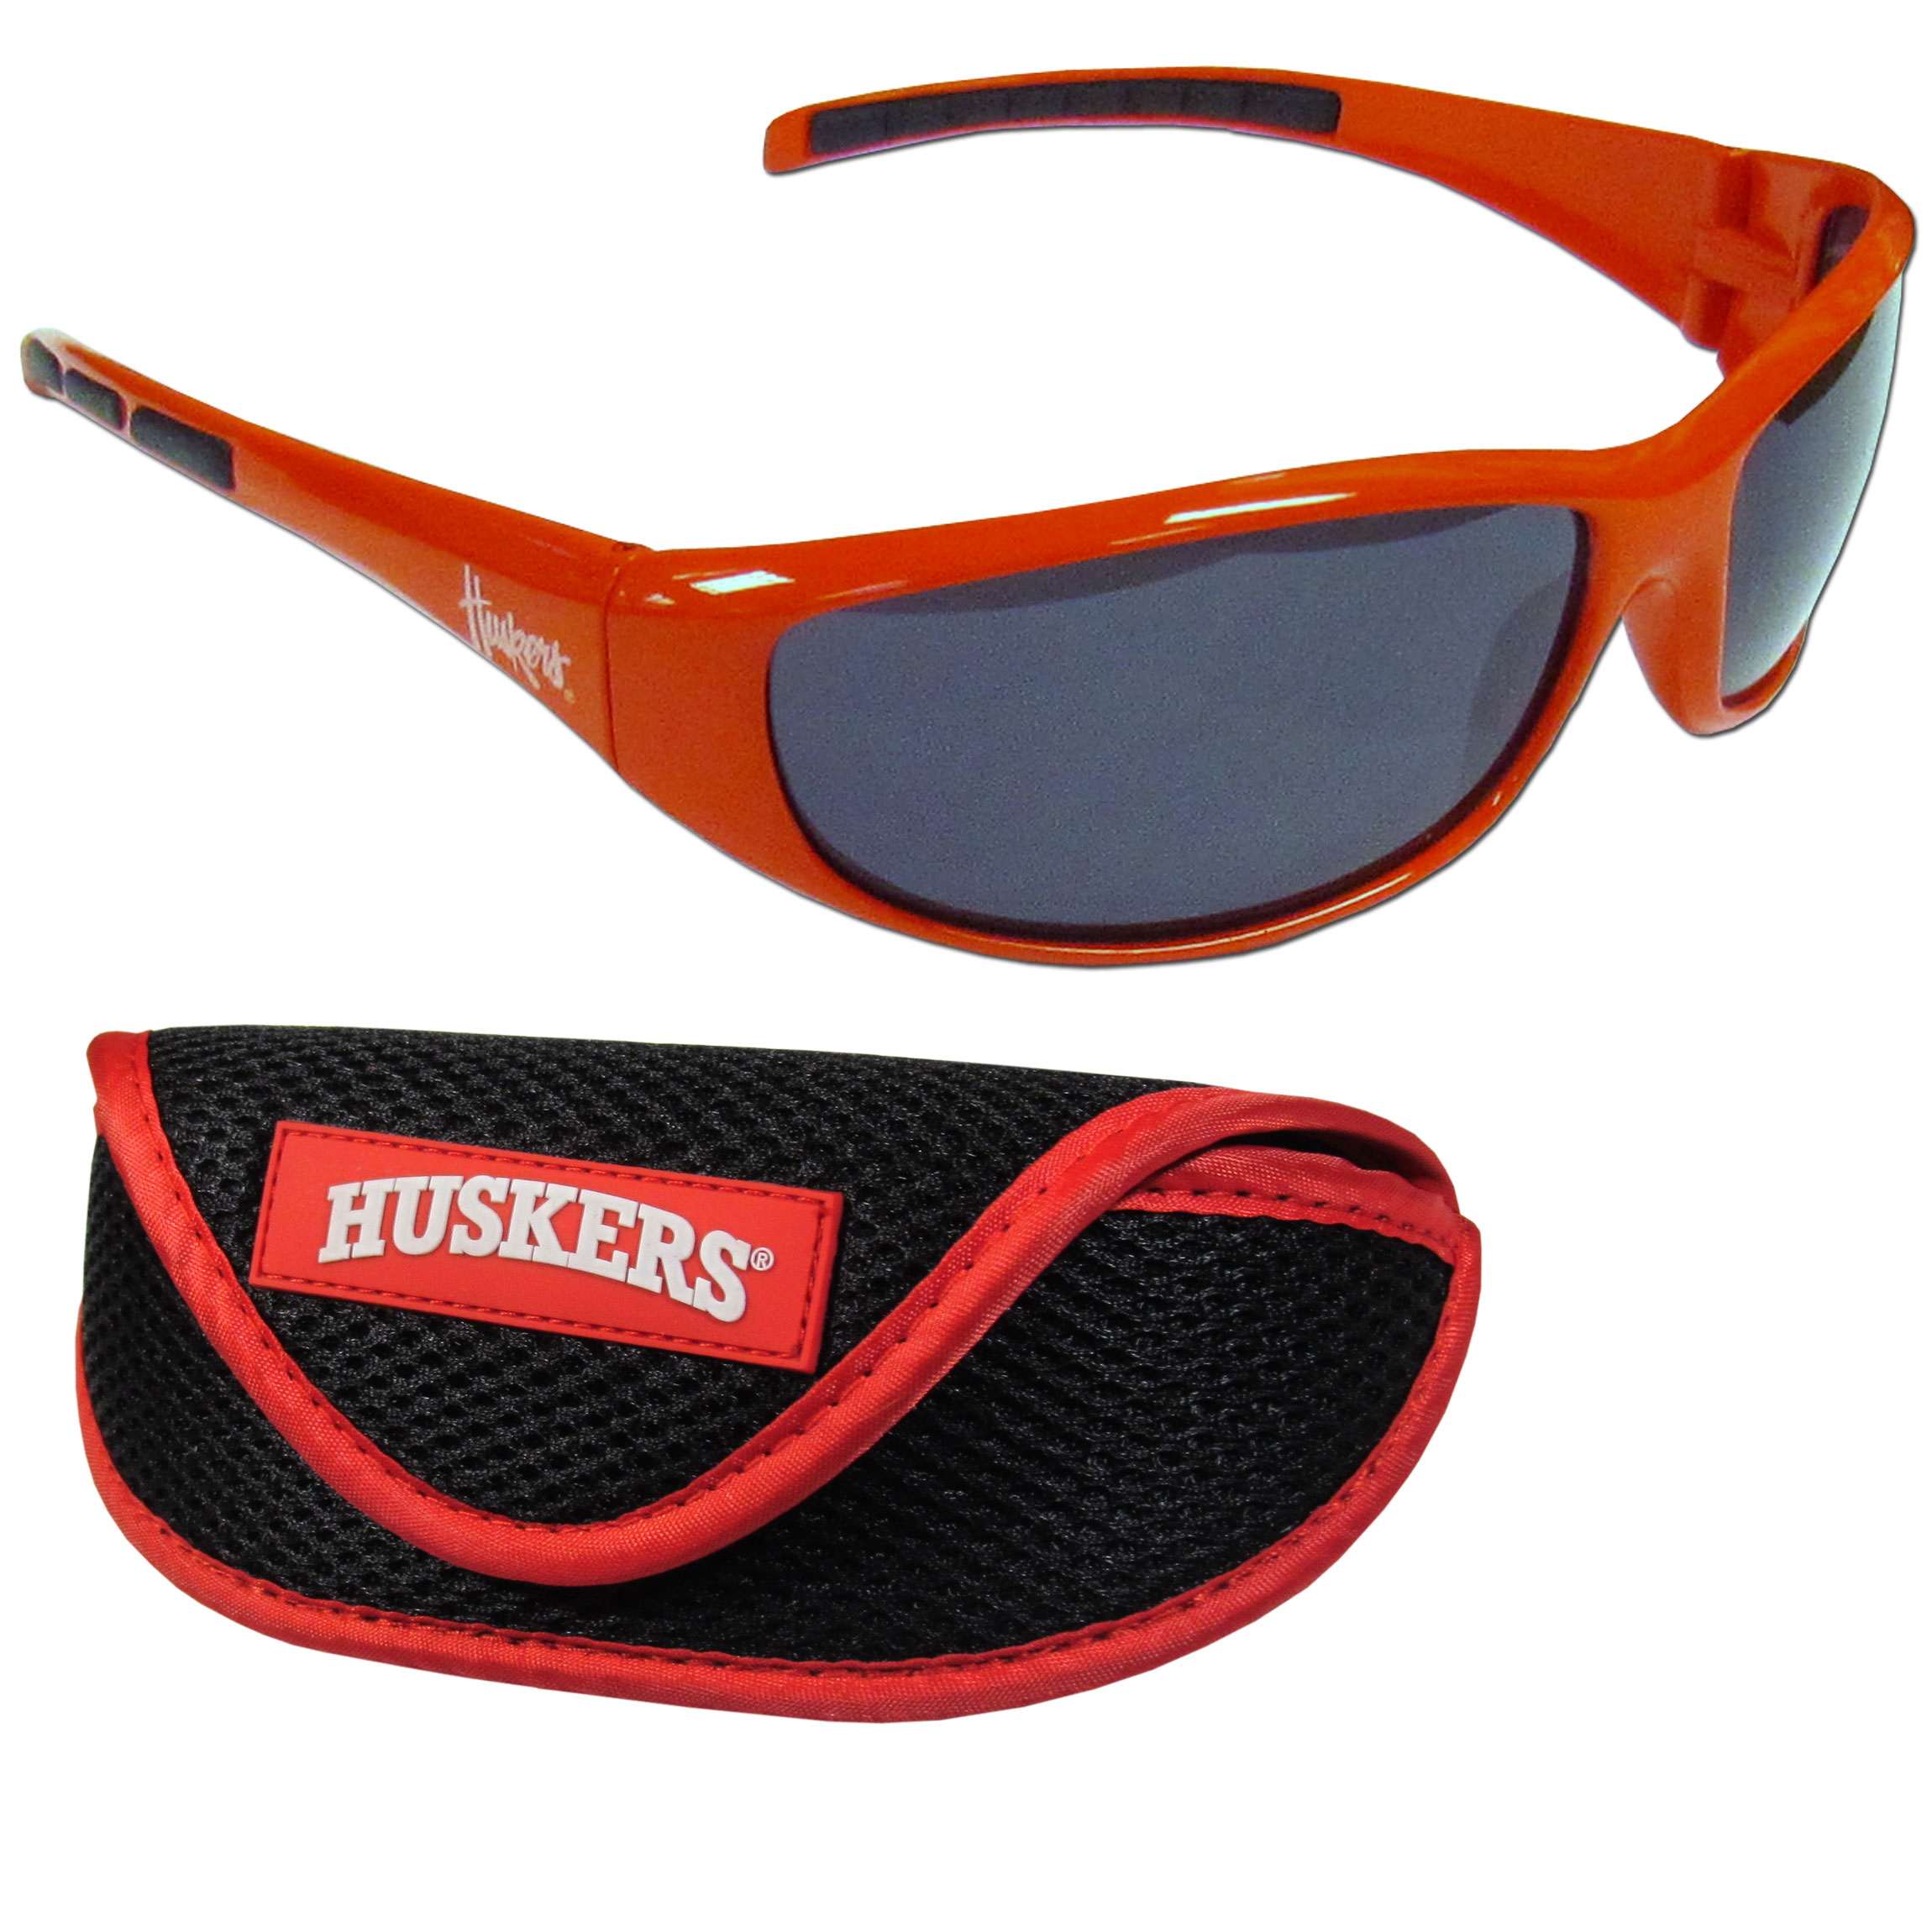 Nebraska Cornhuskers Wrap Sunglass and Case Set - This great set includes a high quality pair of Nebraska Cornhuskers wrap sunglasses and soft sport carrying case.